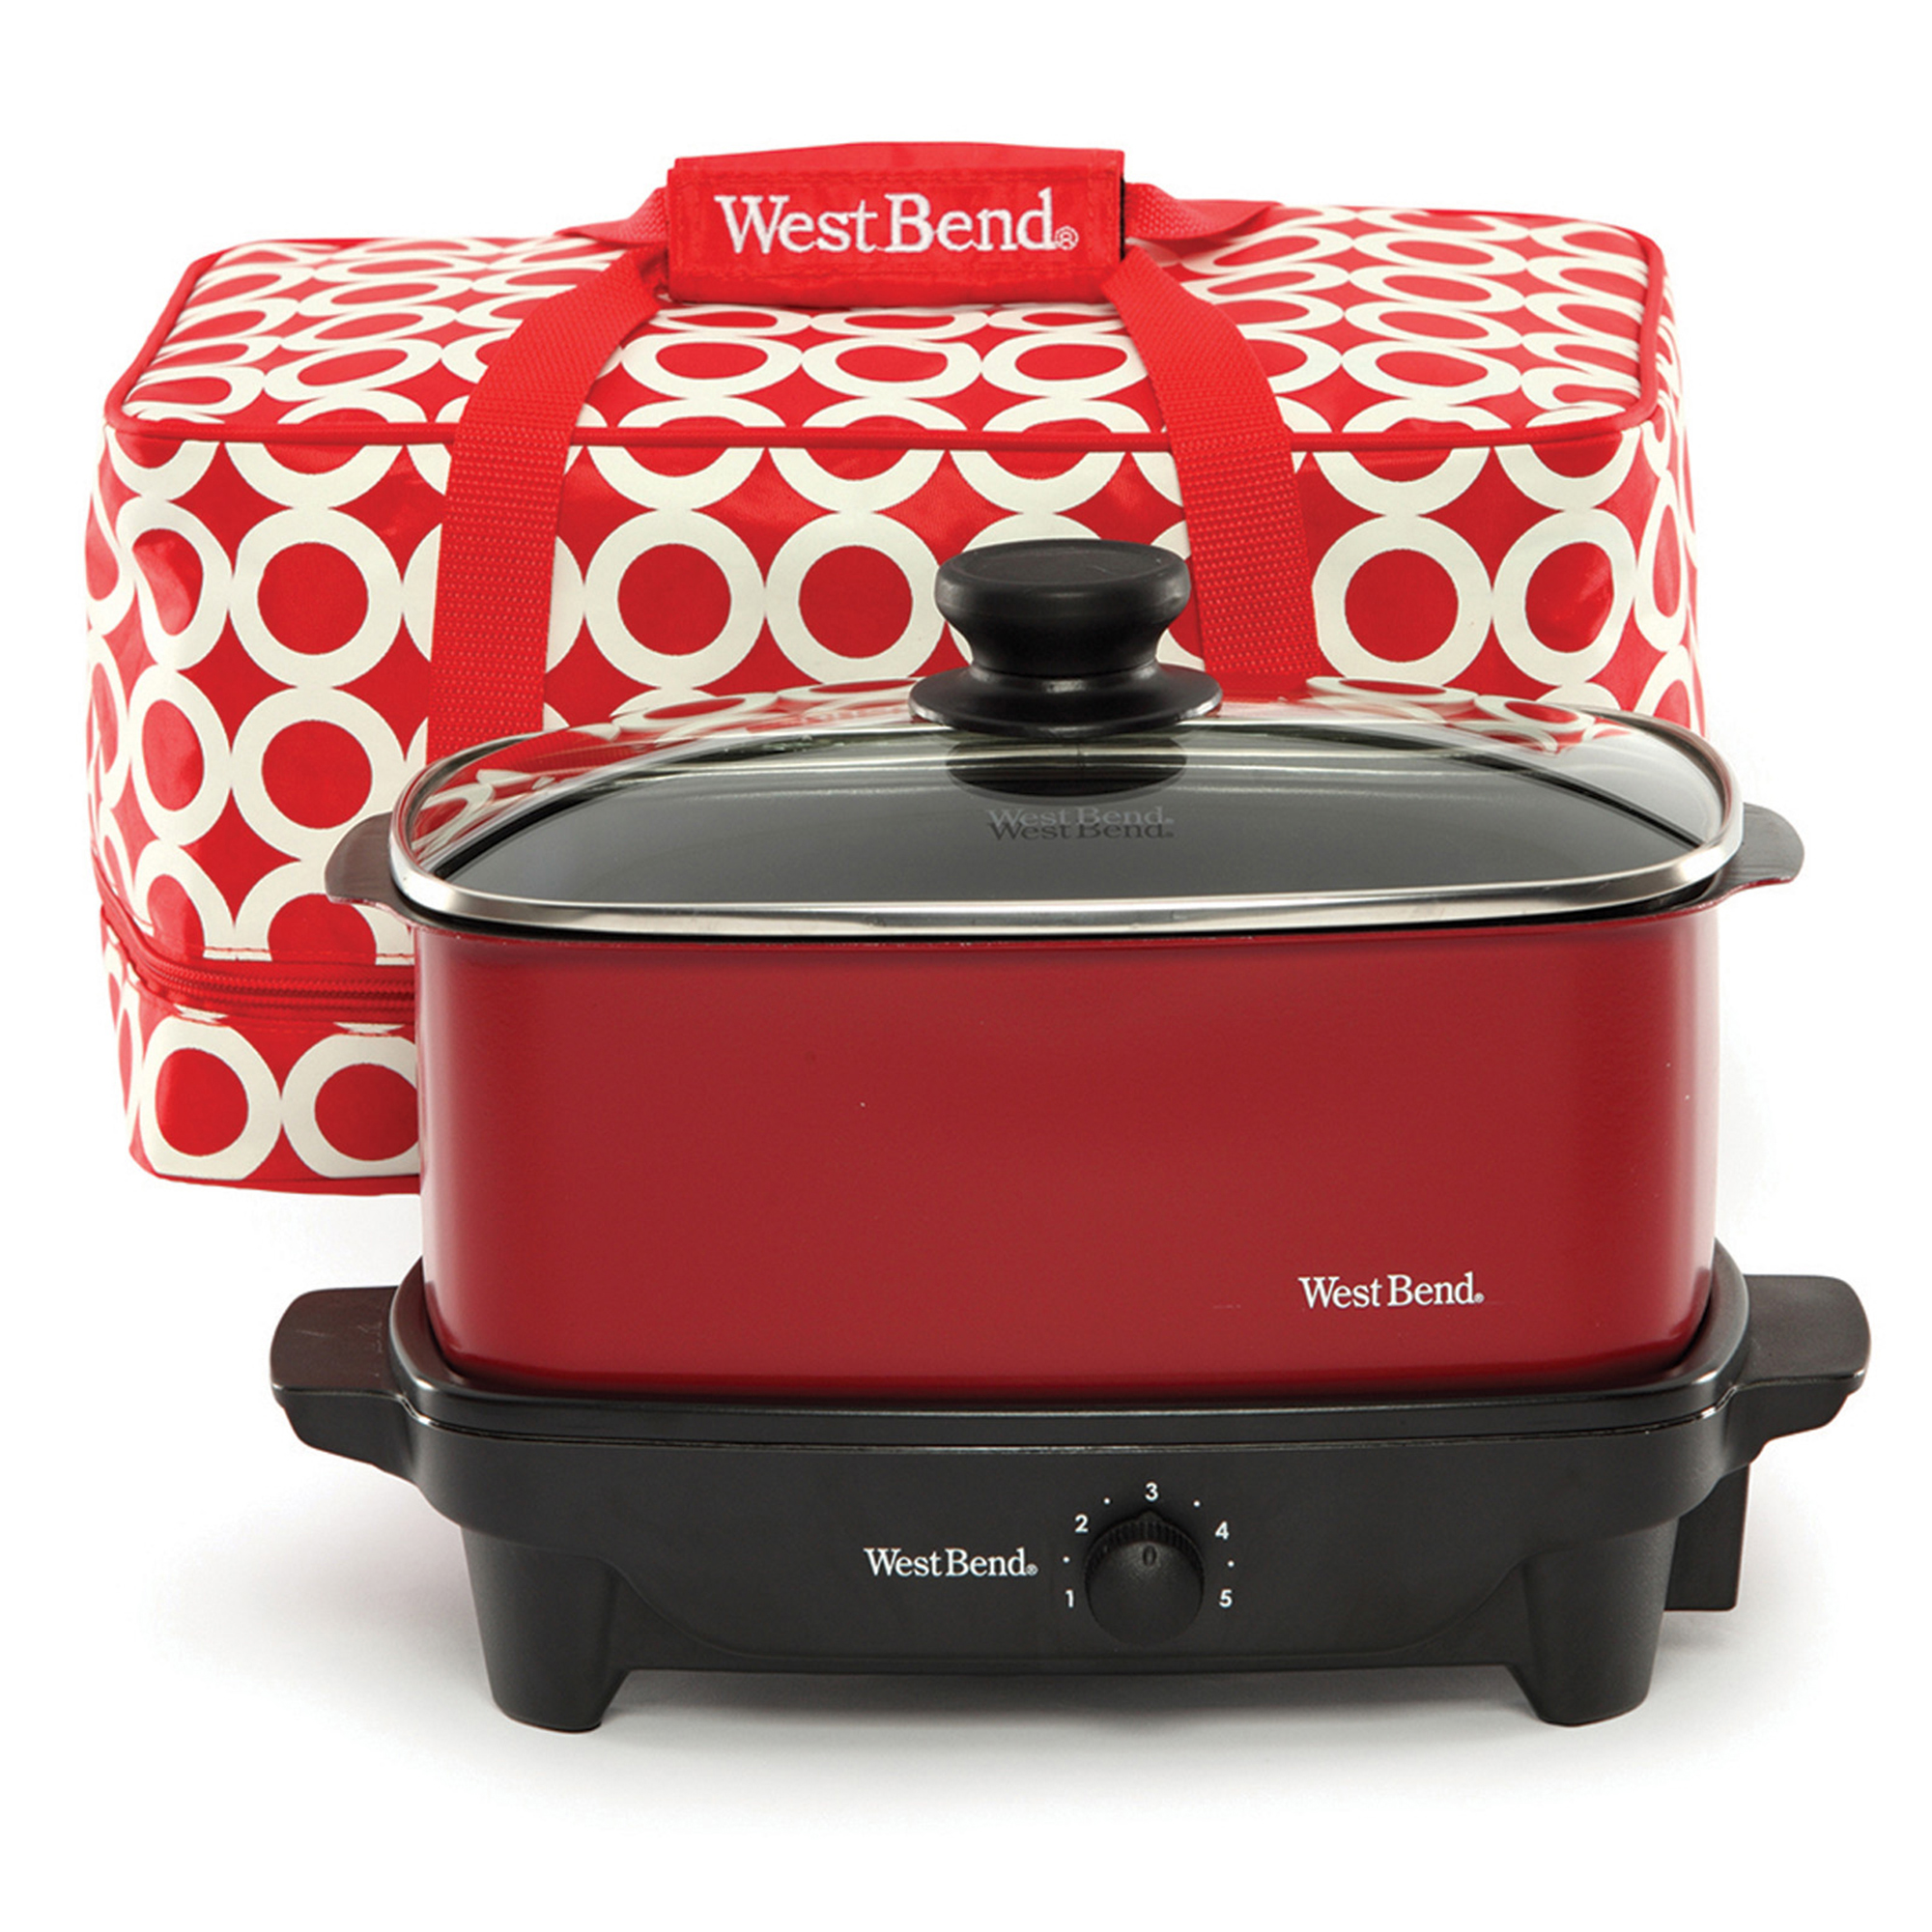 West Bend 84915R 5-Quart Versatility Slow Cooker with Tote, Red